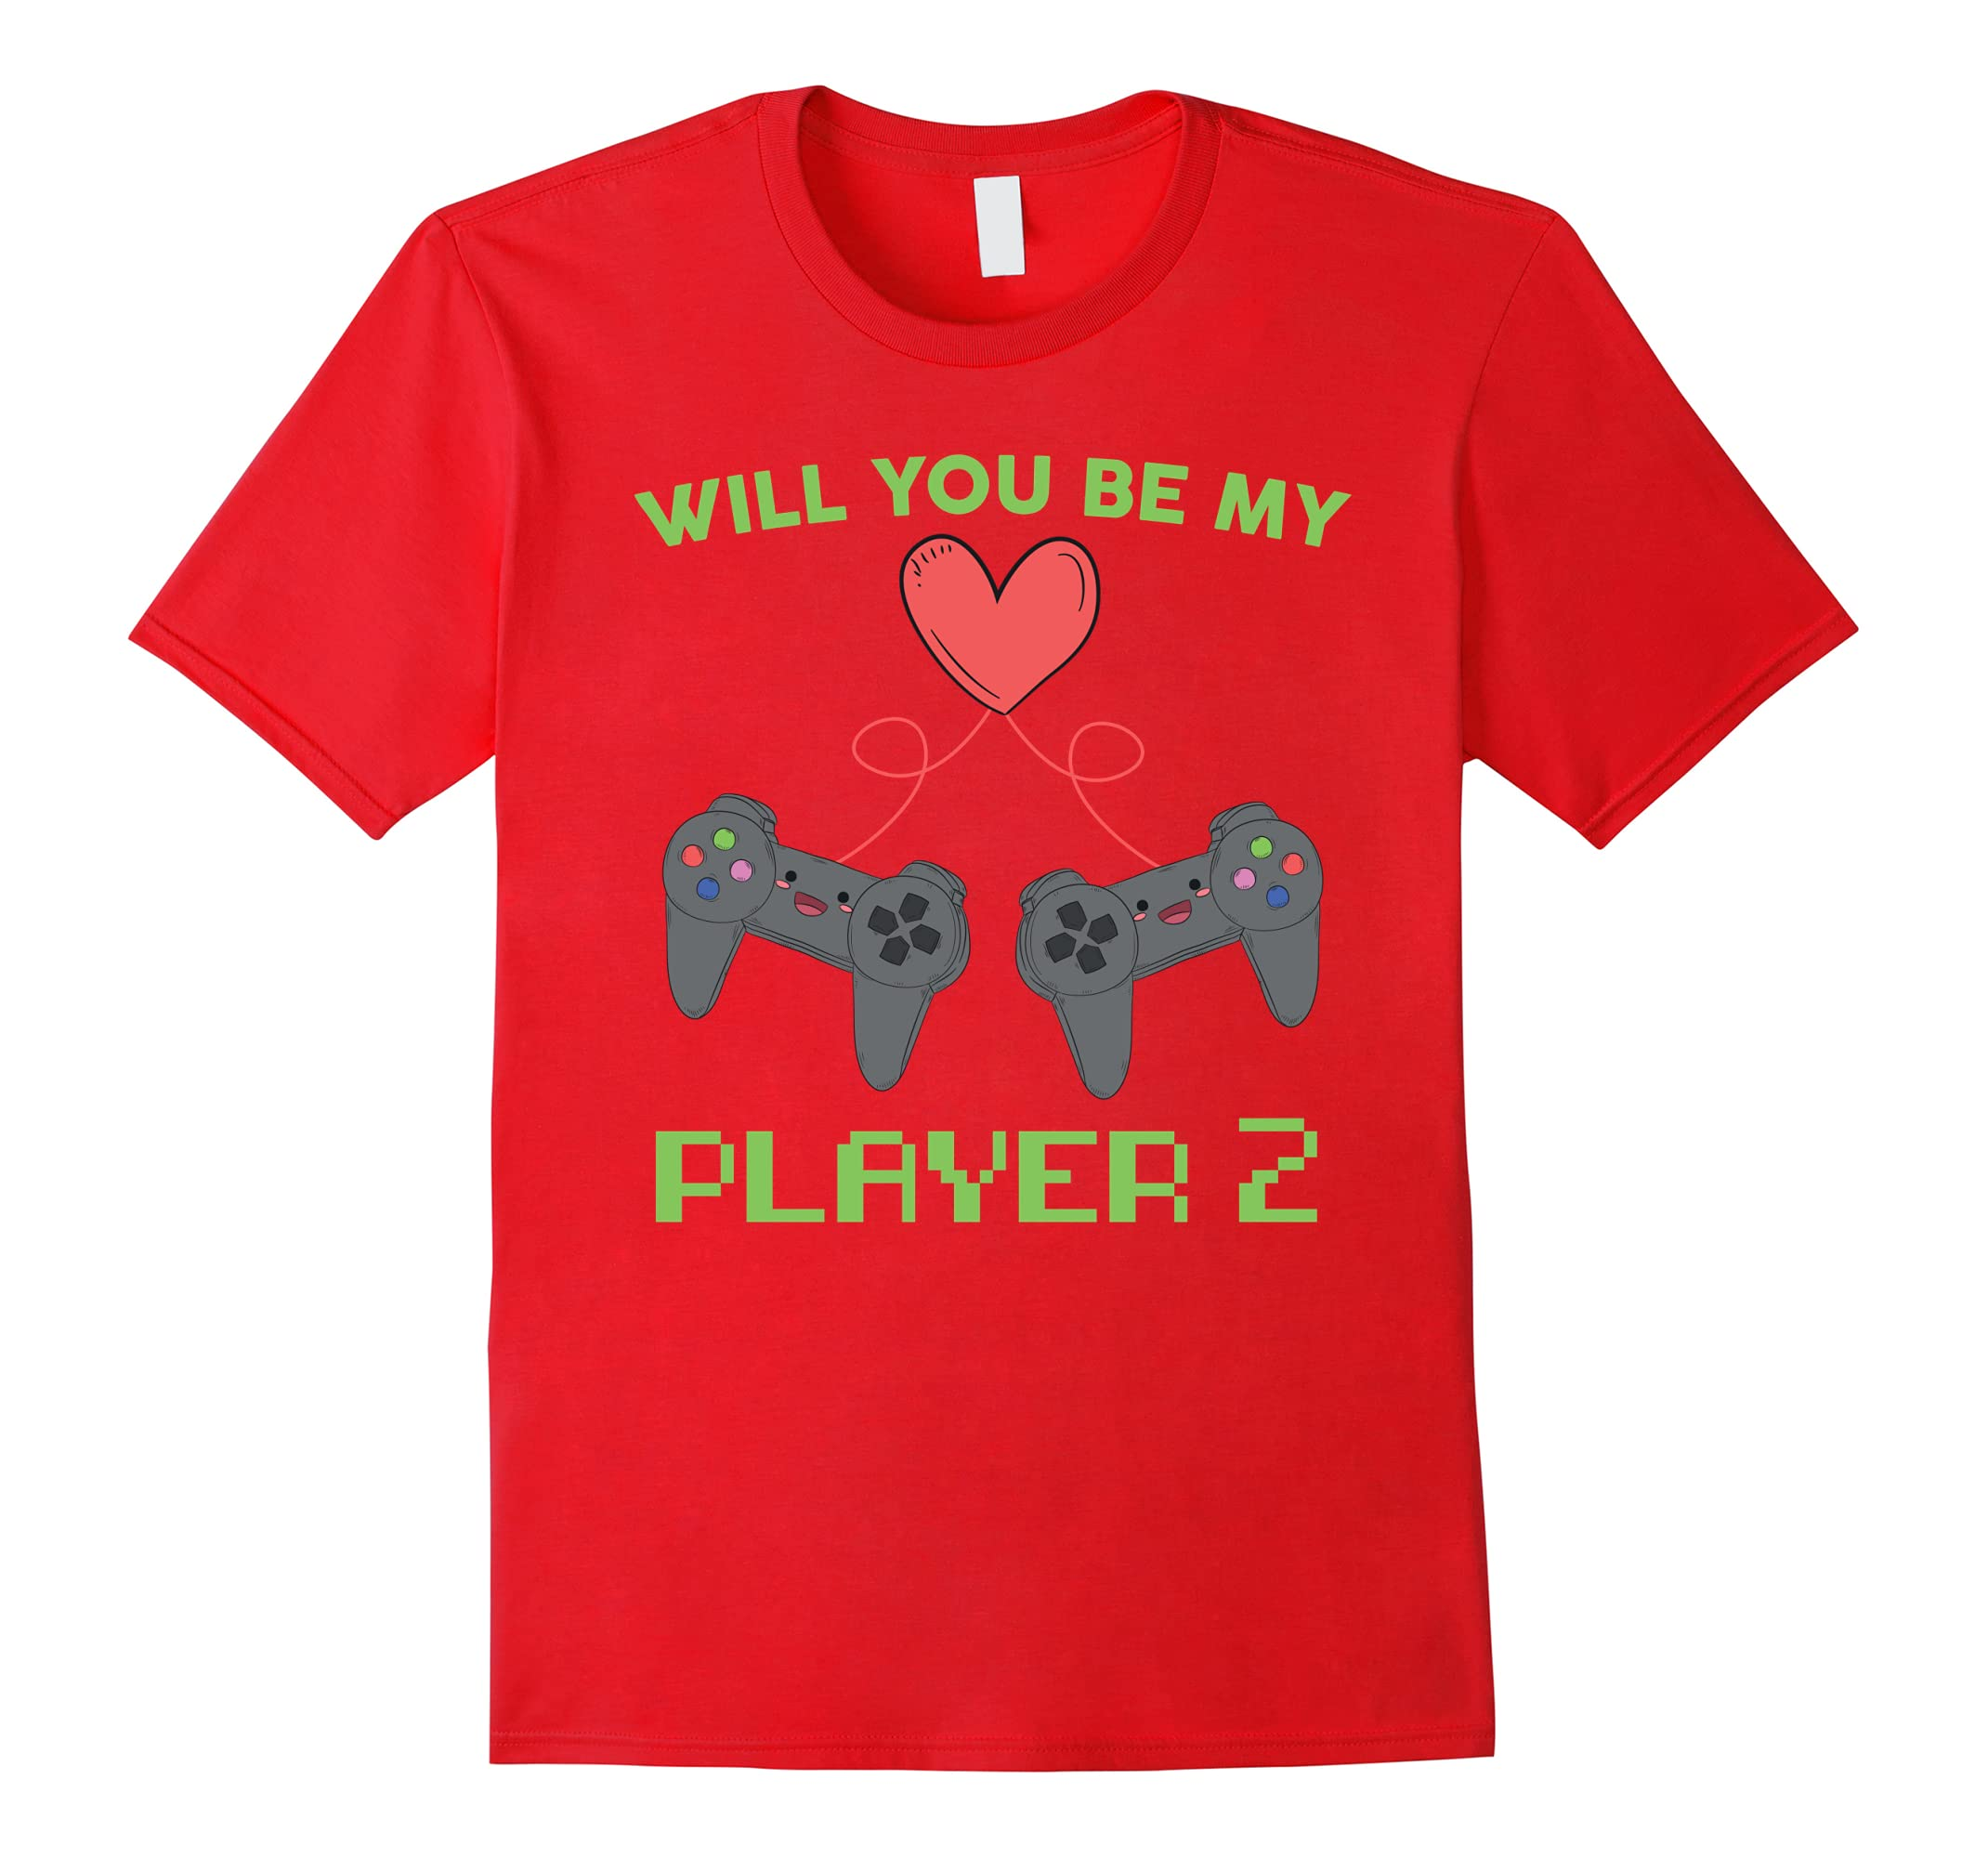 Be My Player 2 T-Shirt - Fun Tee for Gamer Couples-ah my shirt one gift